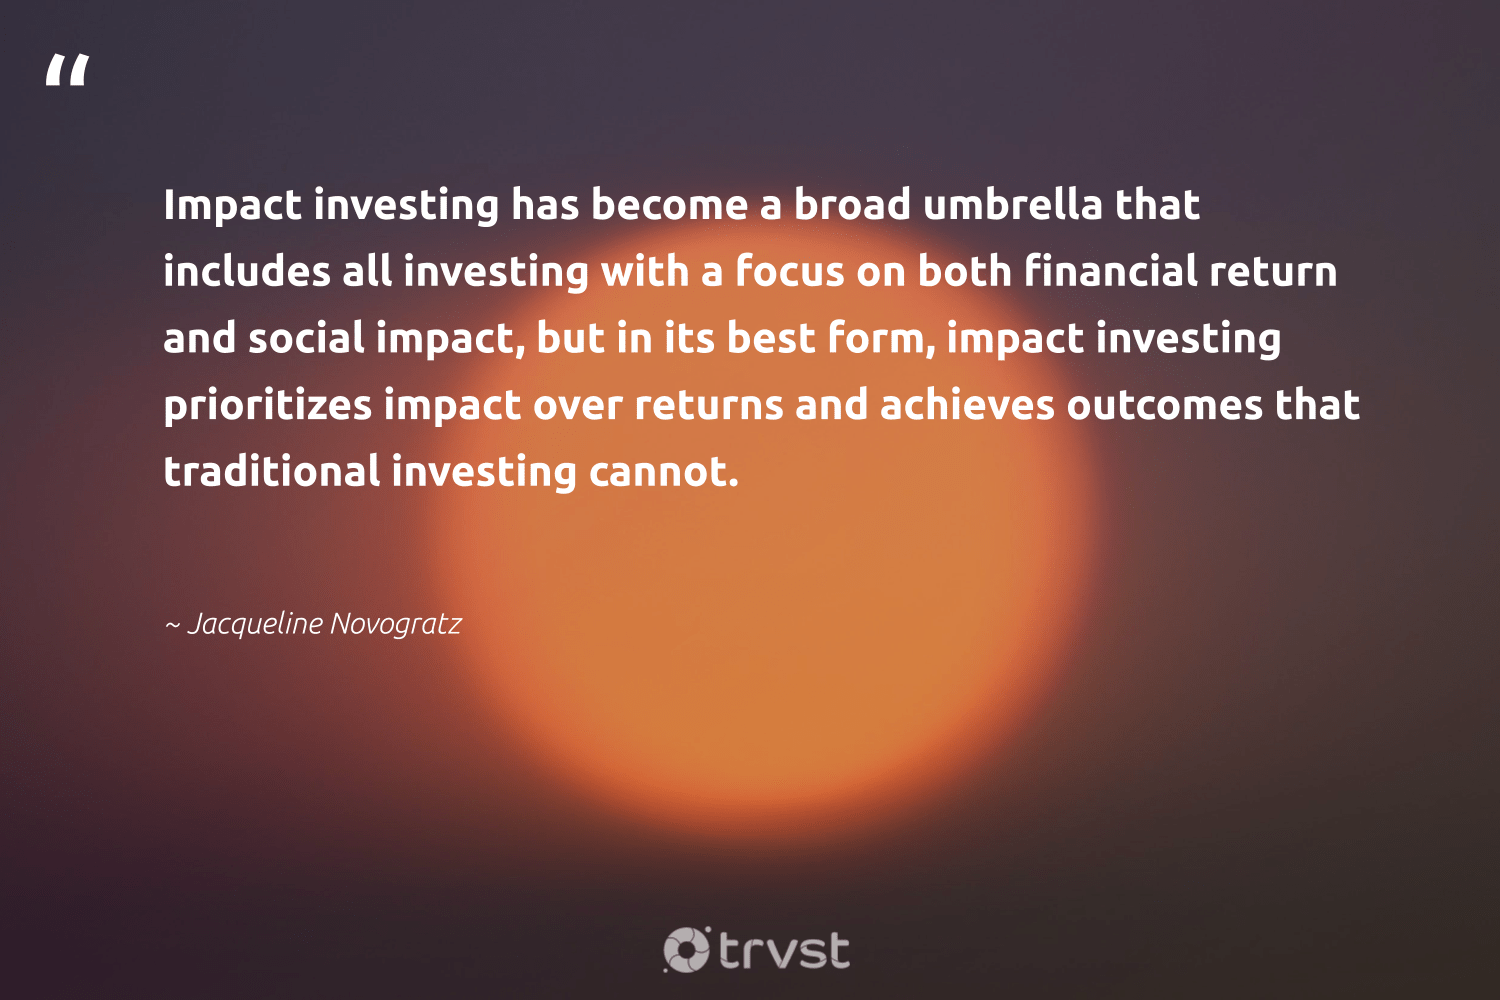 """Impact investing has become a broad umbrella that includes all investing with a focus on both financial return and social impact, but in its best form, impact investing prioritizes impact over returns and achieves outcomes that traditional investing cannot.""  - Jacqueline Novogratz #trvst #quotes #impact #socialimpact #impactinvesting #focus #impactfinance #socialchange #sustainable #takeaction #weareallone #dogood"